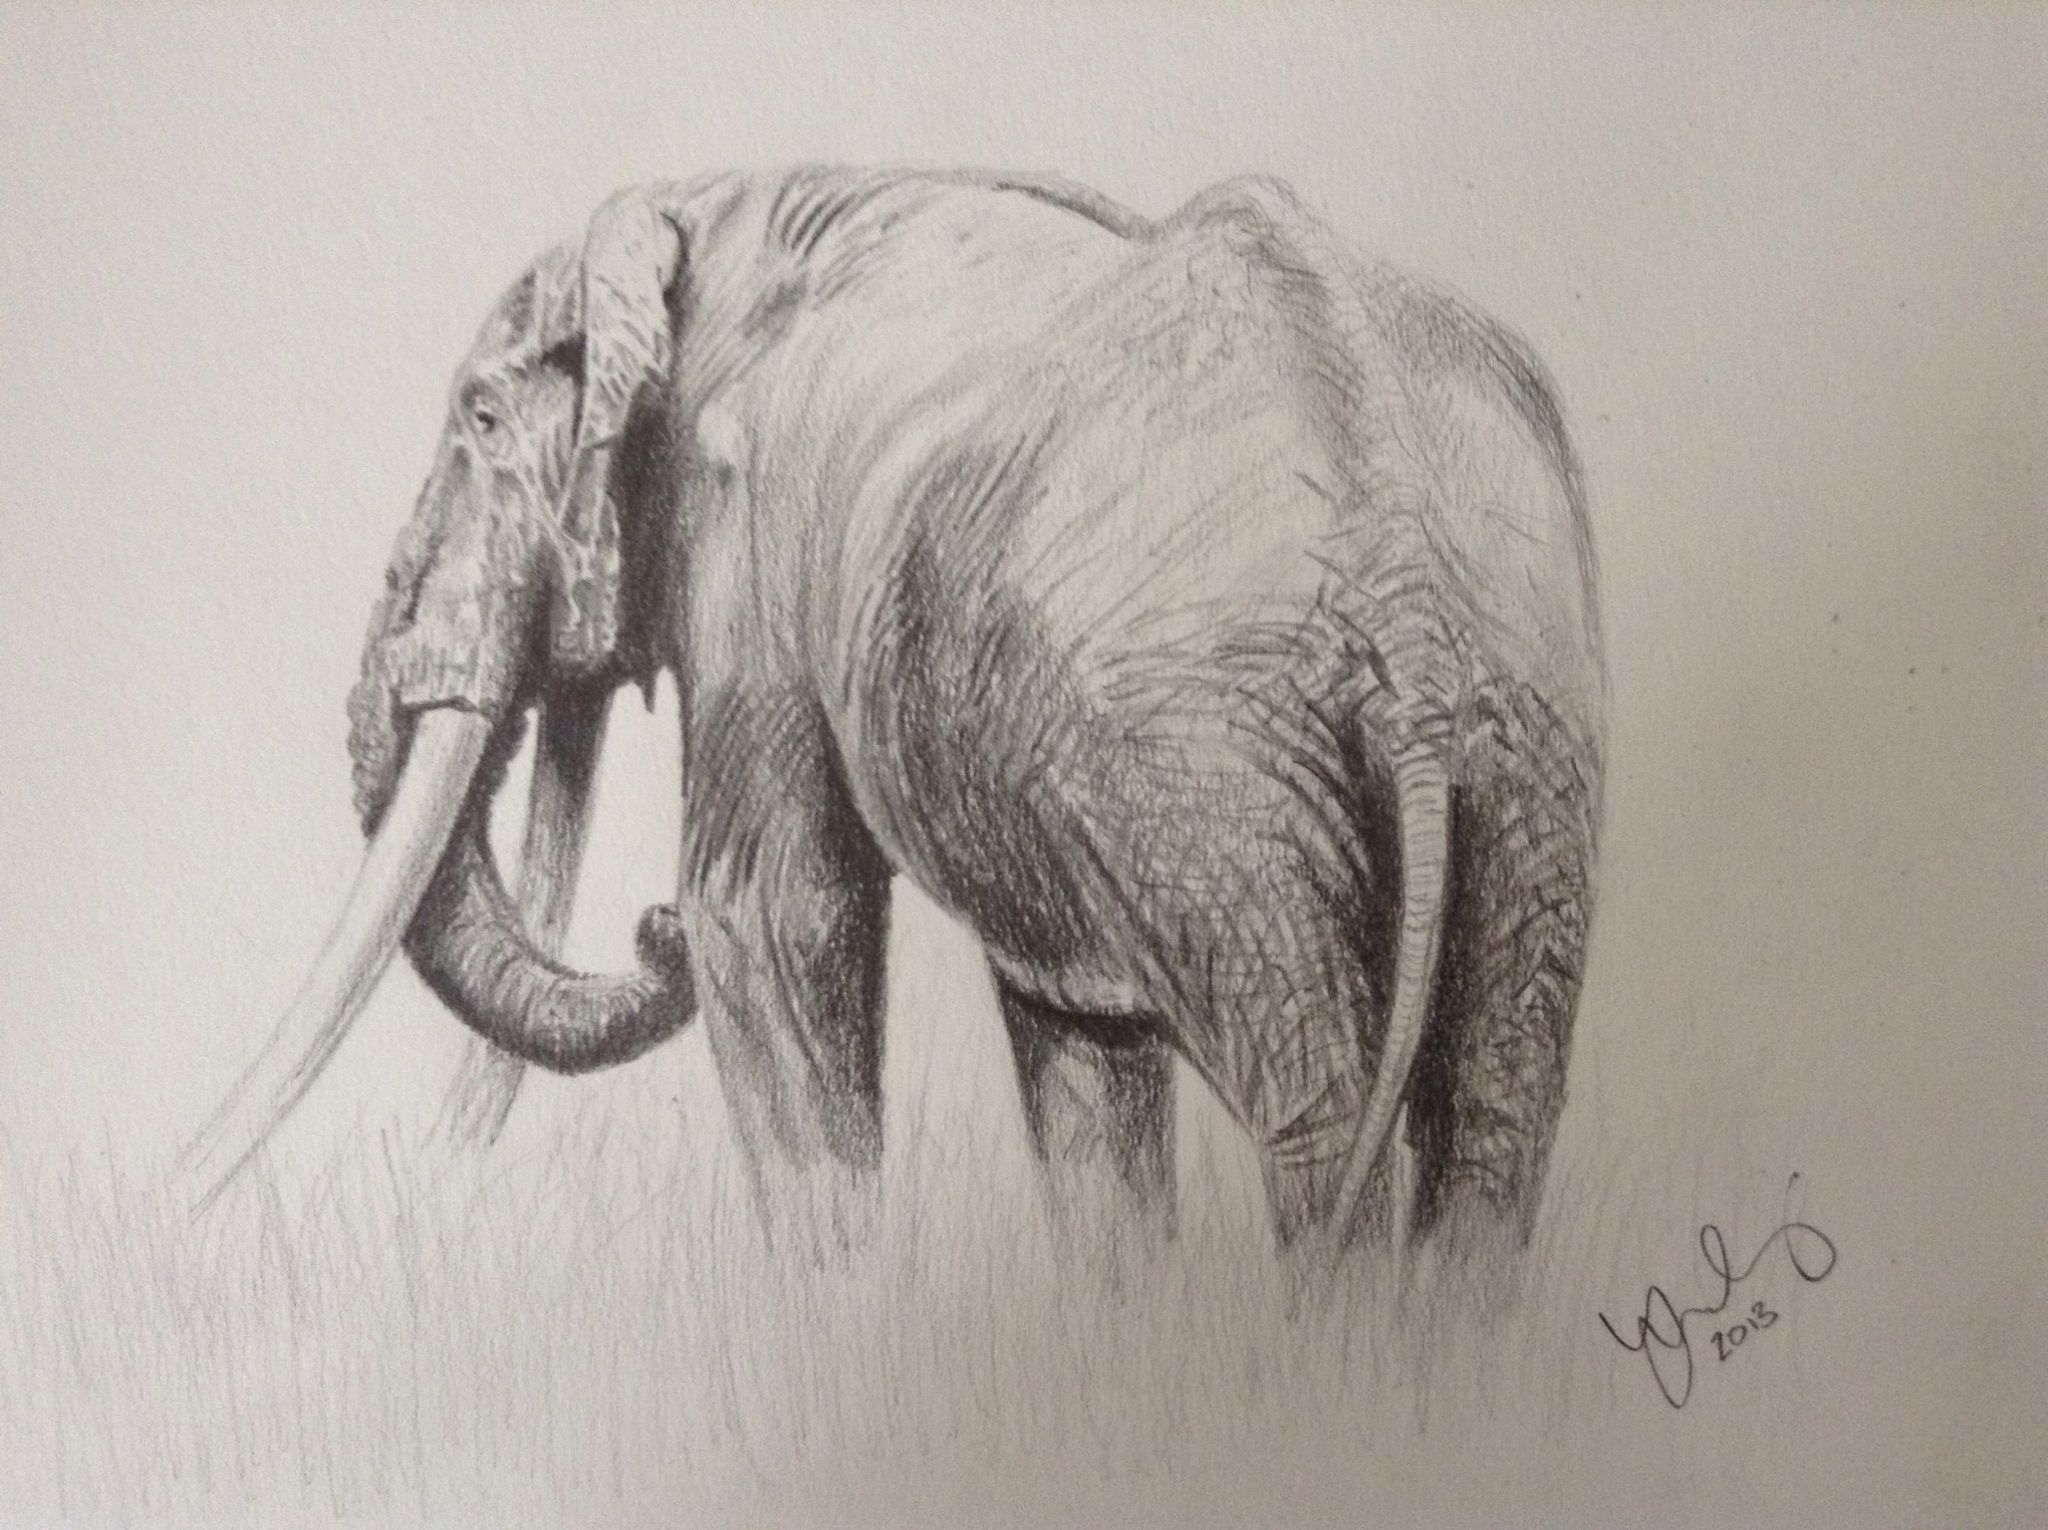 2048x1530 Elephant Drawing In Pencil. I Enjoyed Sketching An Elephant